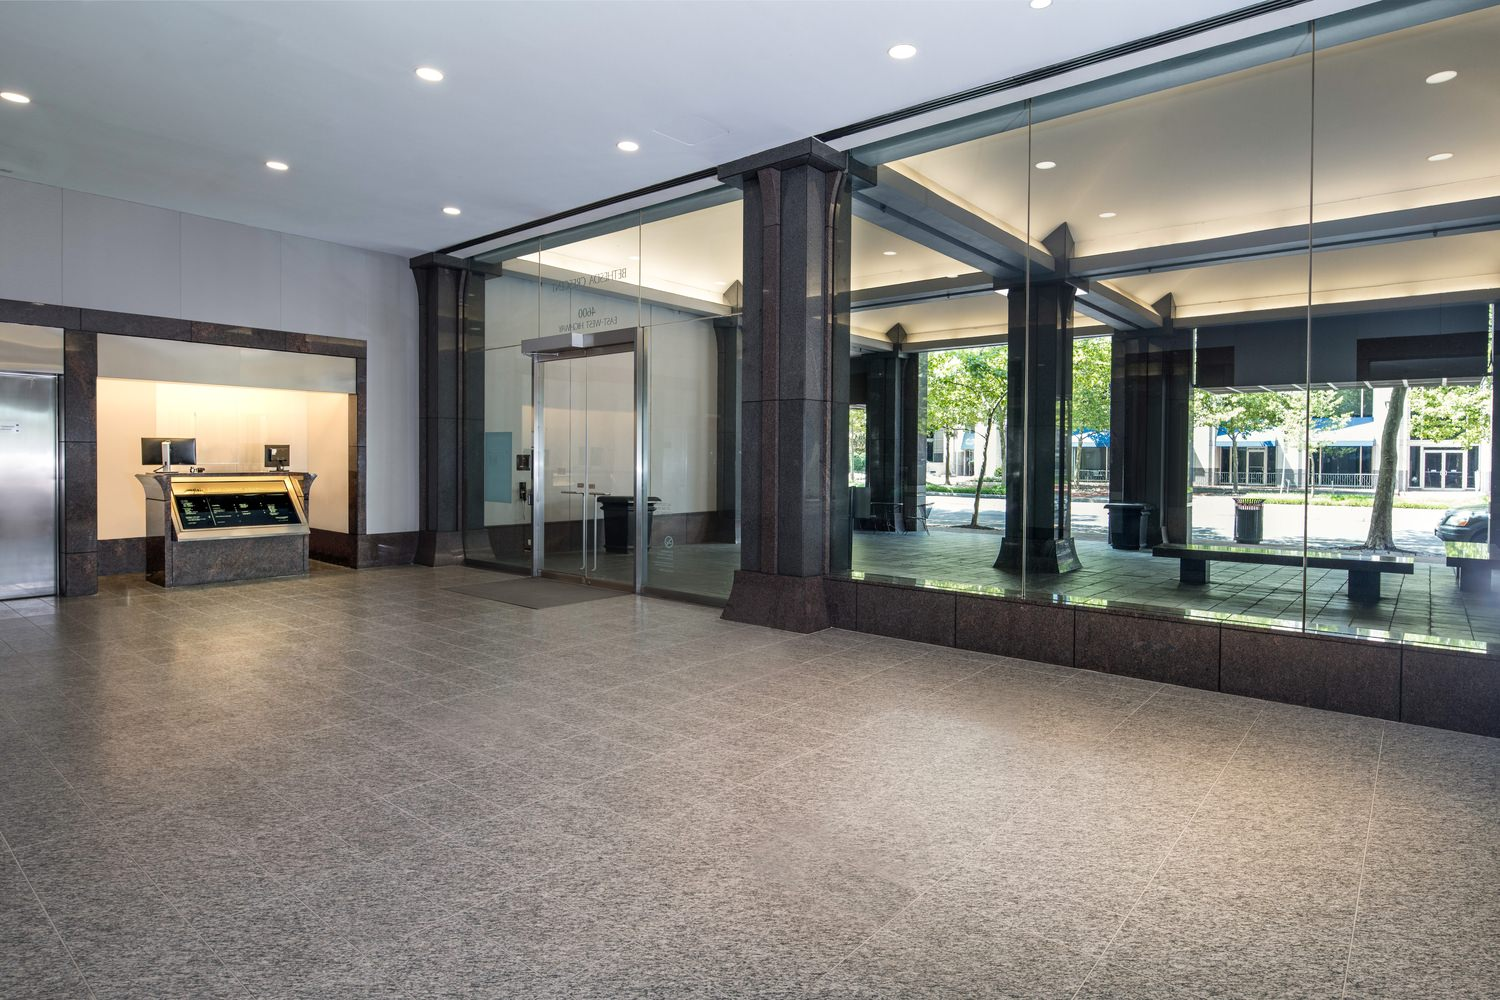 A lobby with dark gray tile and large glass windows.